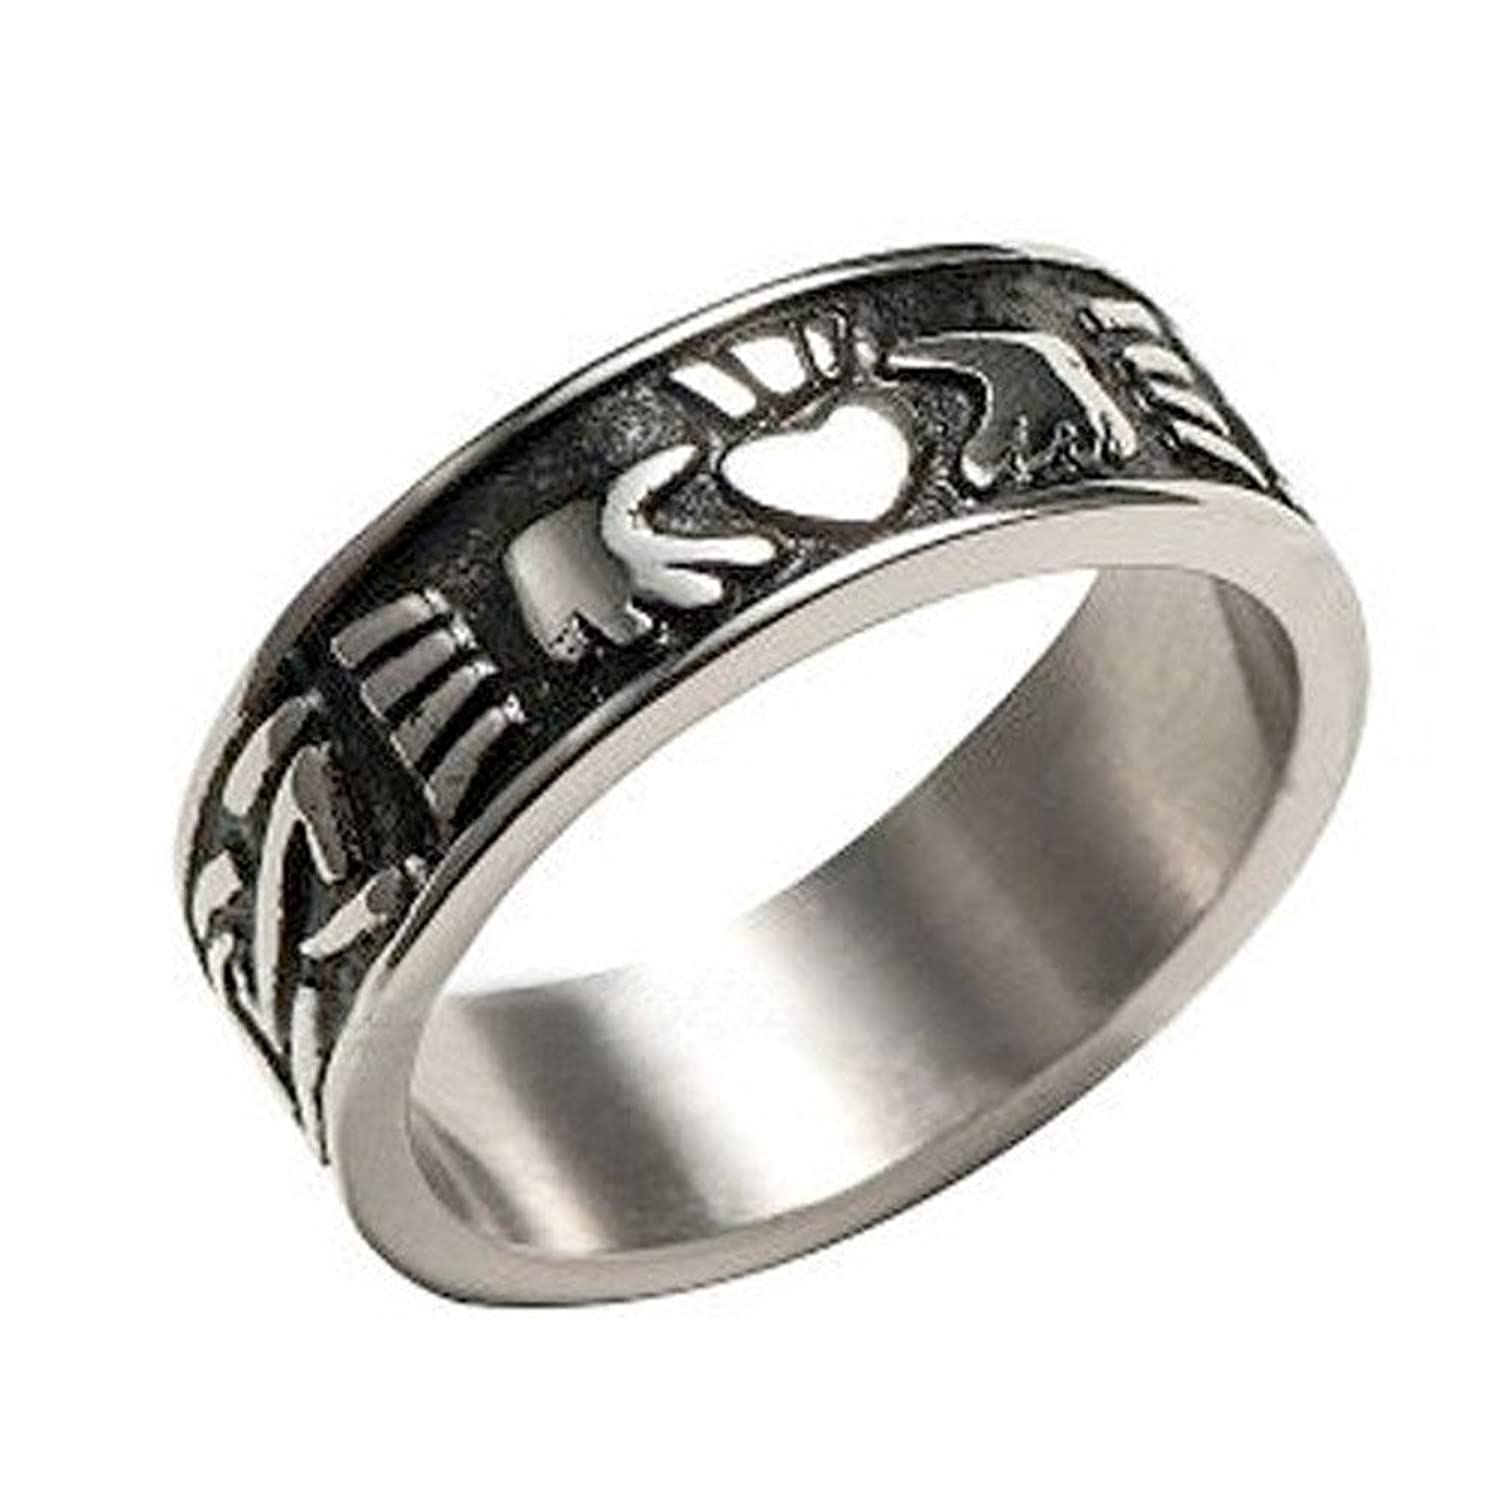 diamond silver soho black s rings lazaro eternity man men ring mens for jewelry